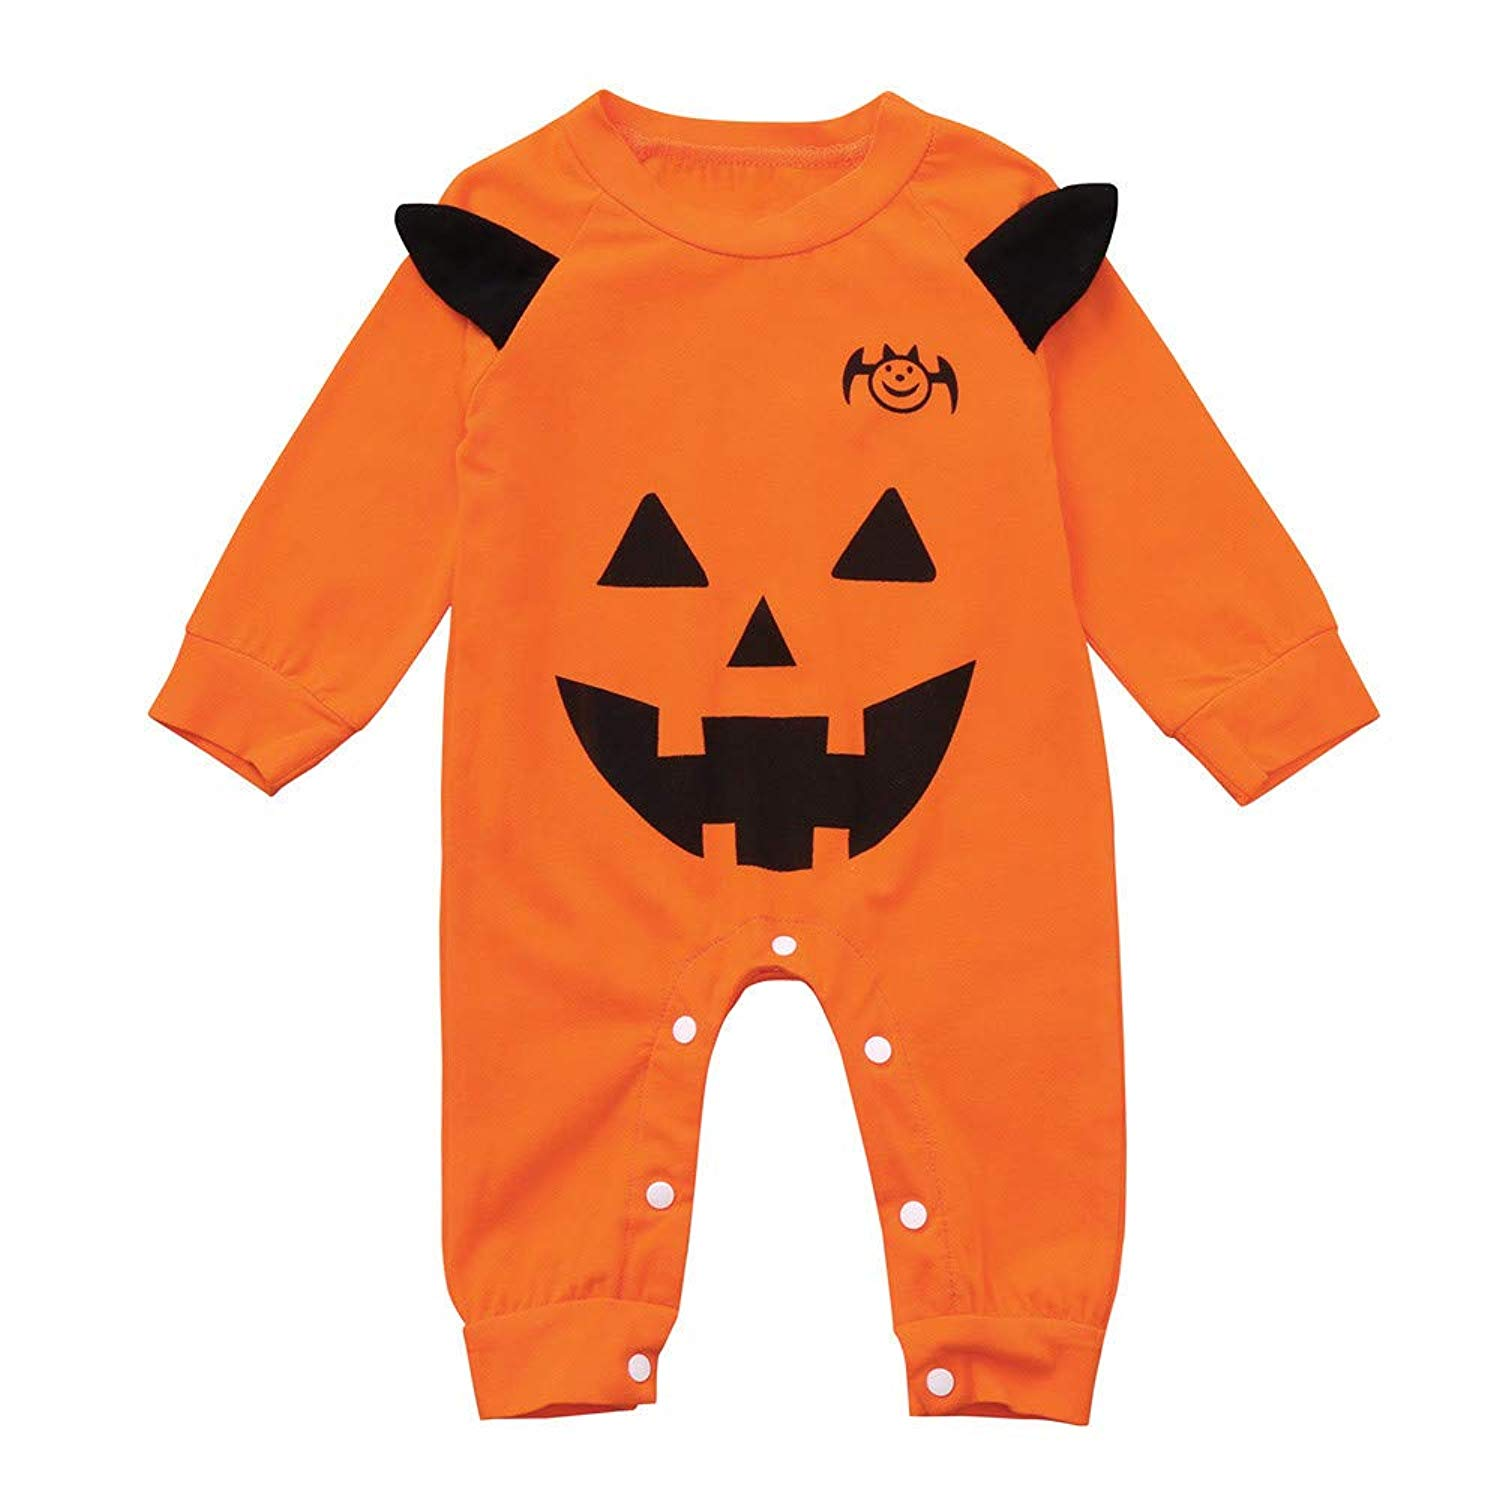 Outtop(TM) Toddler Newborn Infant Baby Girls Boys Cartoon Print Romper Jumpsuit Halloween Outfits